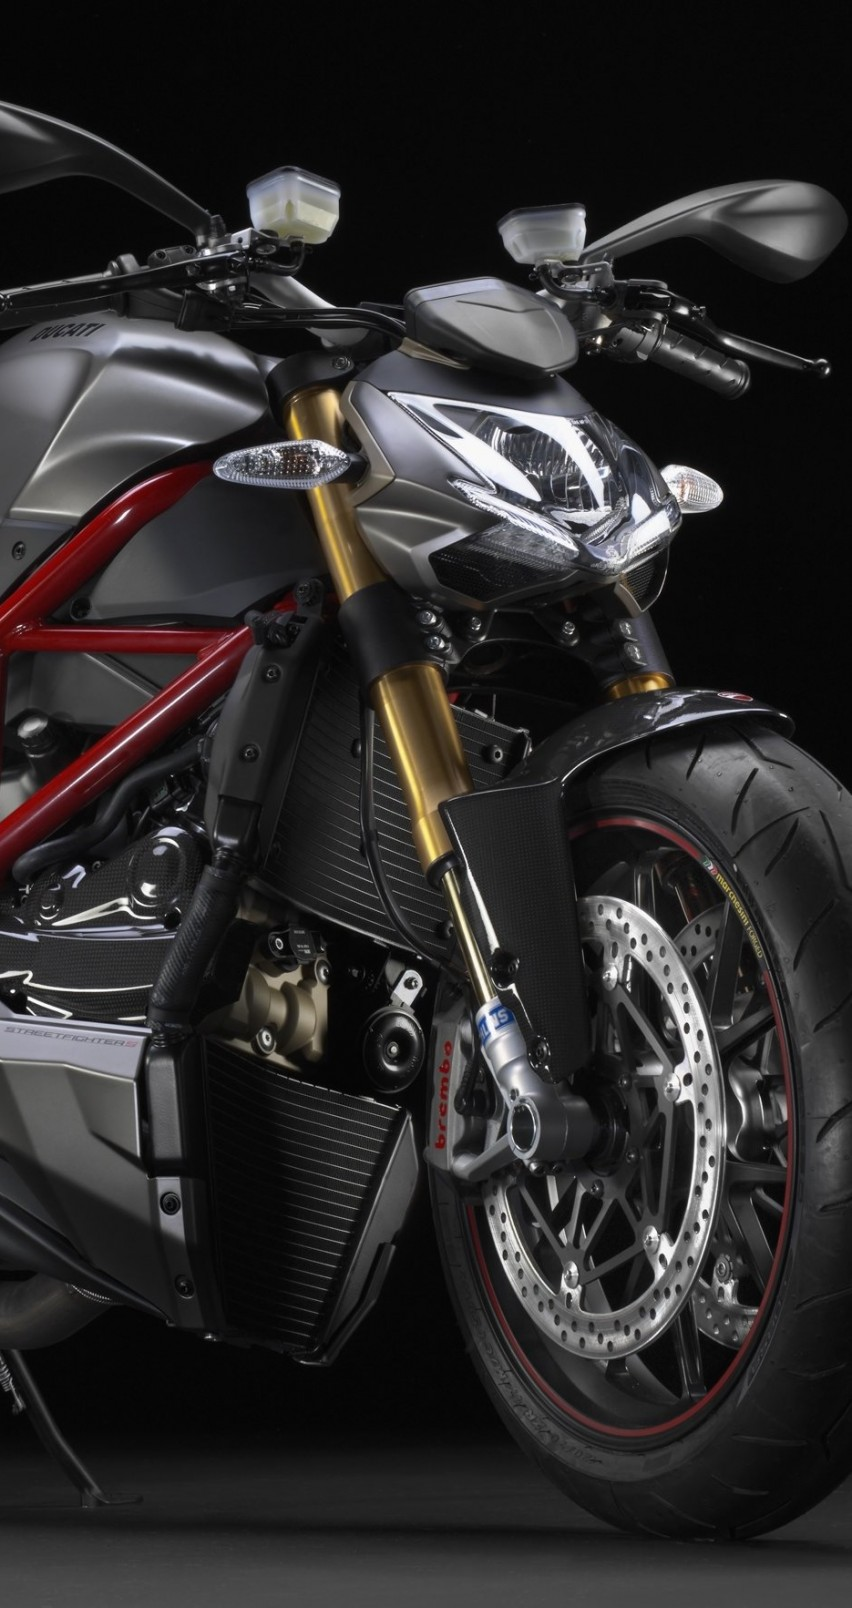 Ducati Streetfighter S Wallpaper for Apple iPhone 6 / 6s